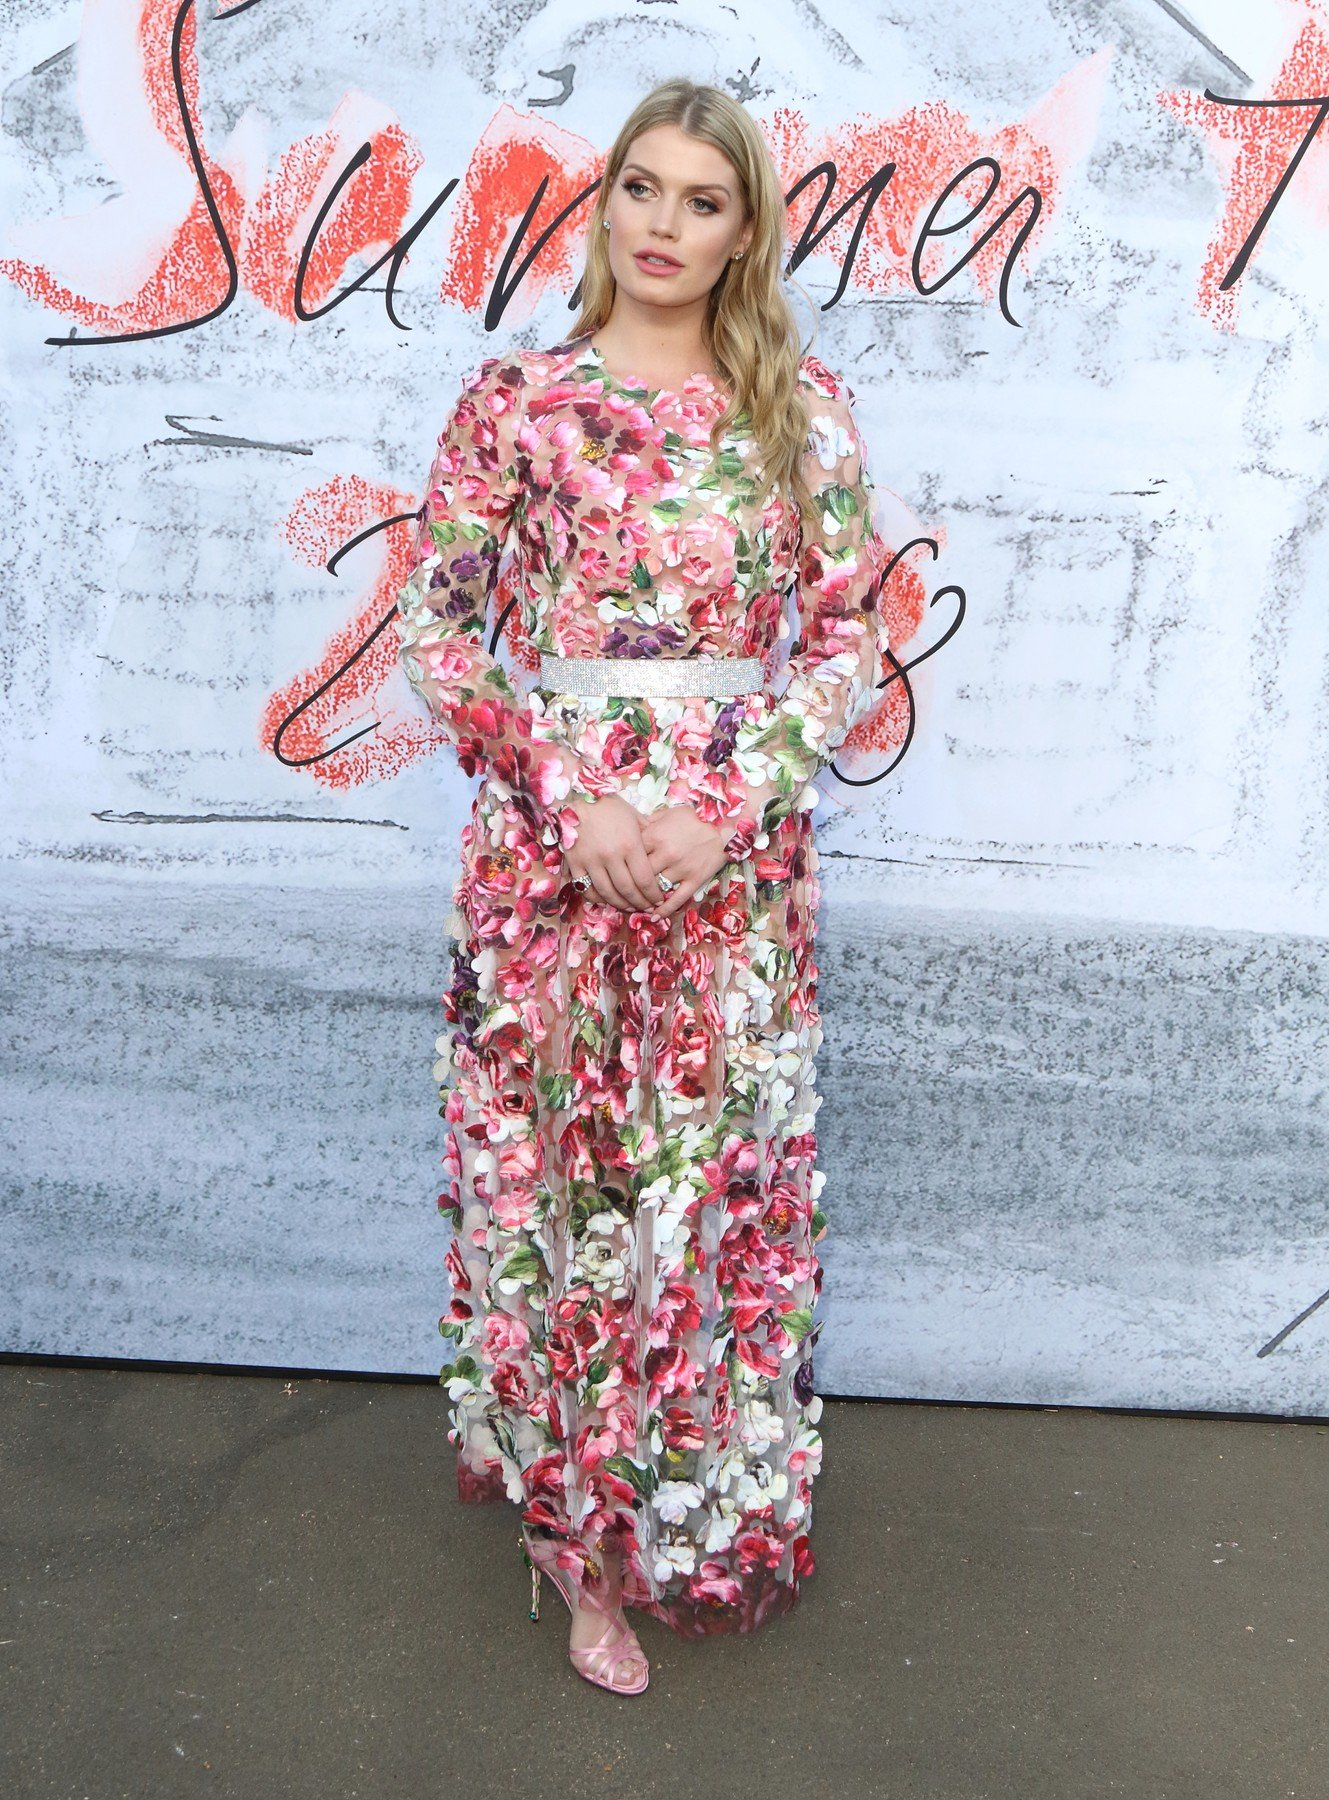 London, UK. Lady Kitty Spencer at The Serpentine Gallery Summer Party at the Serpentine Gallery, Kensington Gardens, London on Tuesday 19 June 2018, Image: 375509702, License: Rights-managed, Restrictions: WORLD WIDE RIGHTS, Model Release: no, Credit line: Profimedia, Landmark